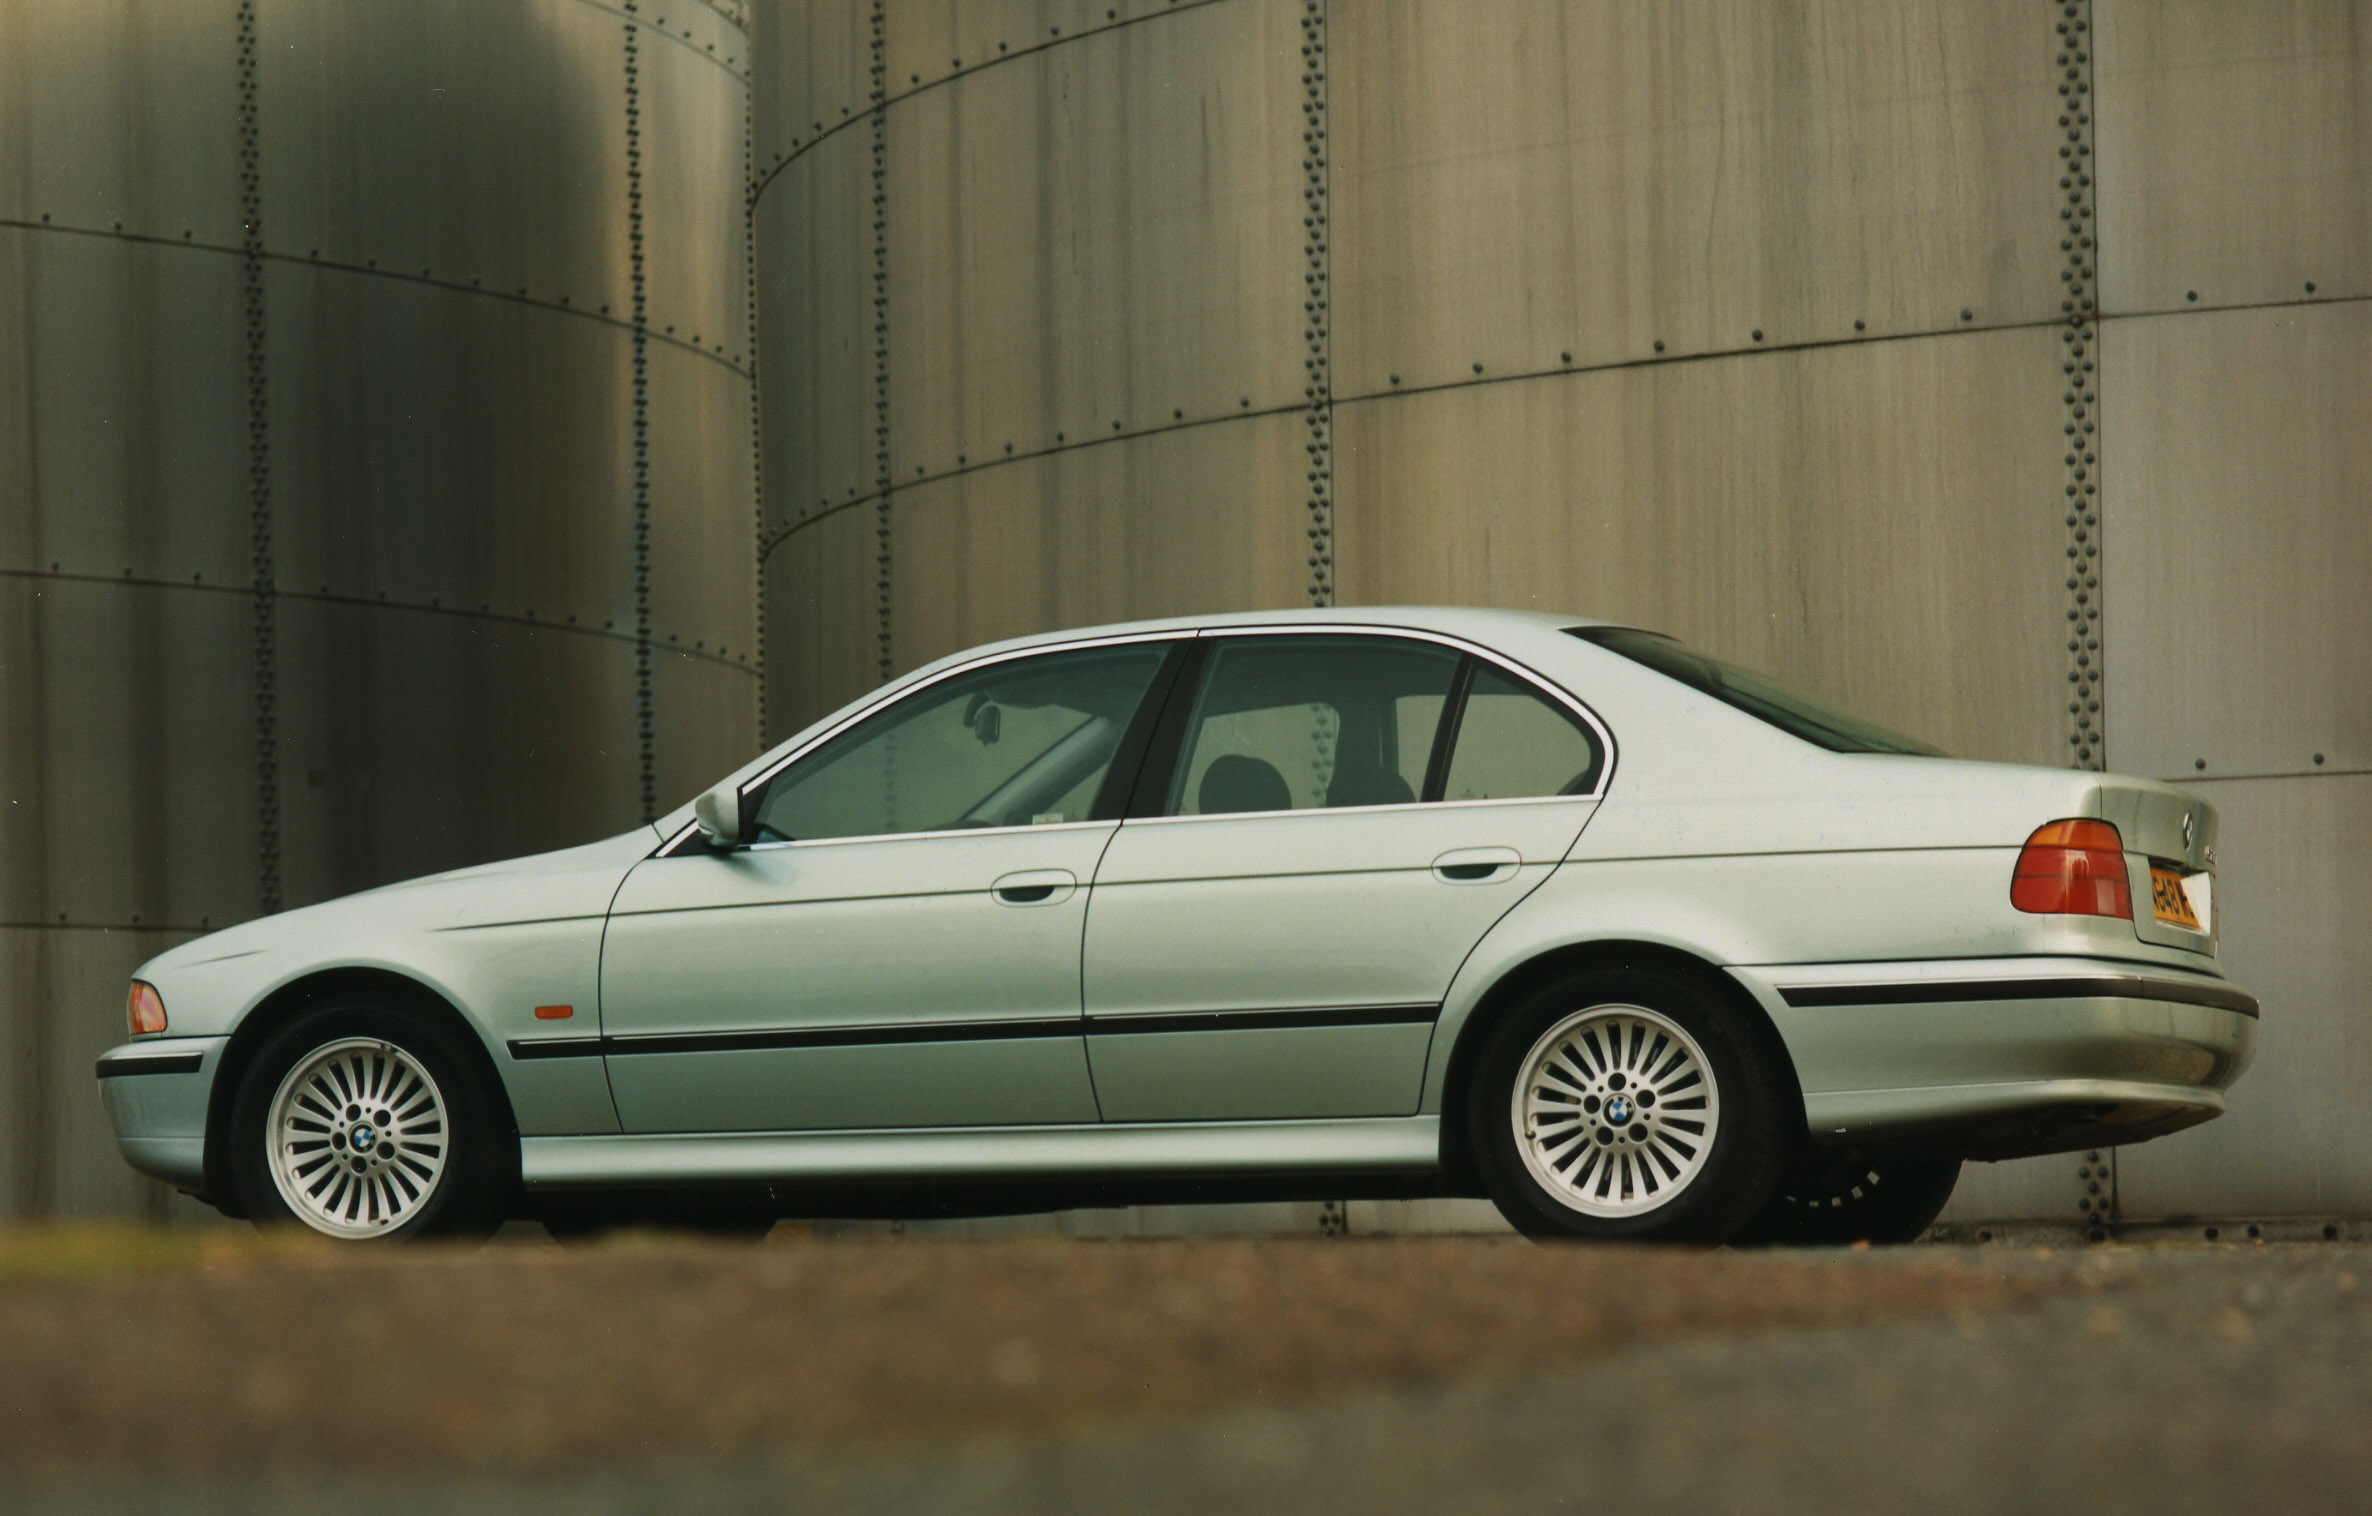 1996 BMW 540i - Picture 39074